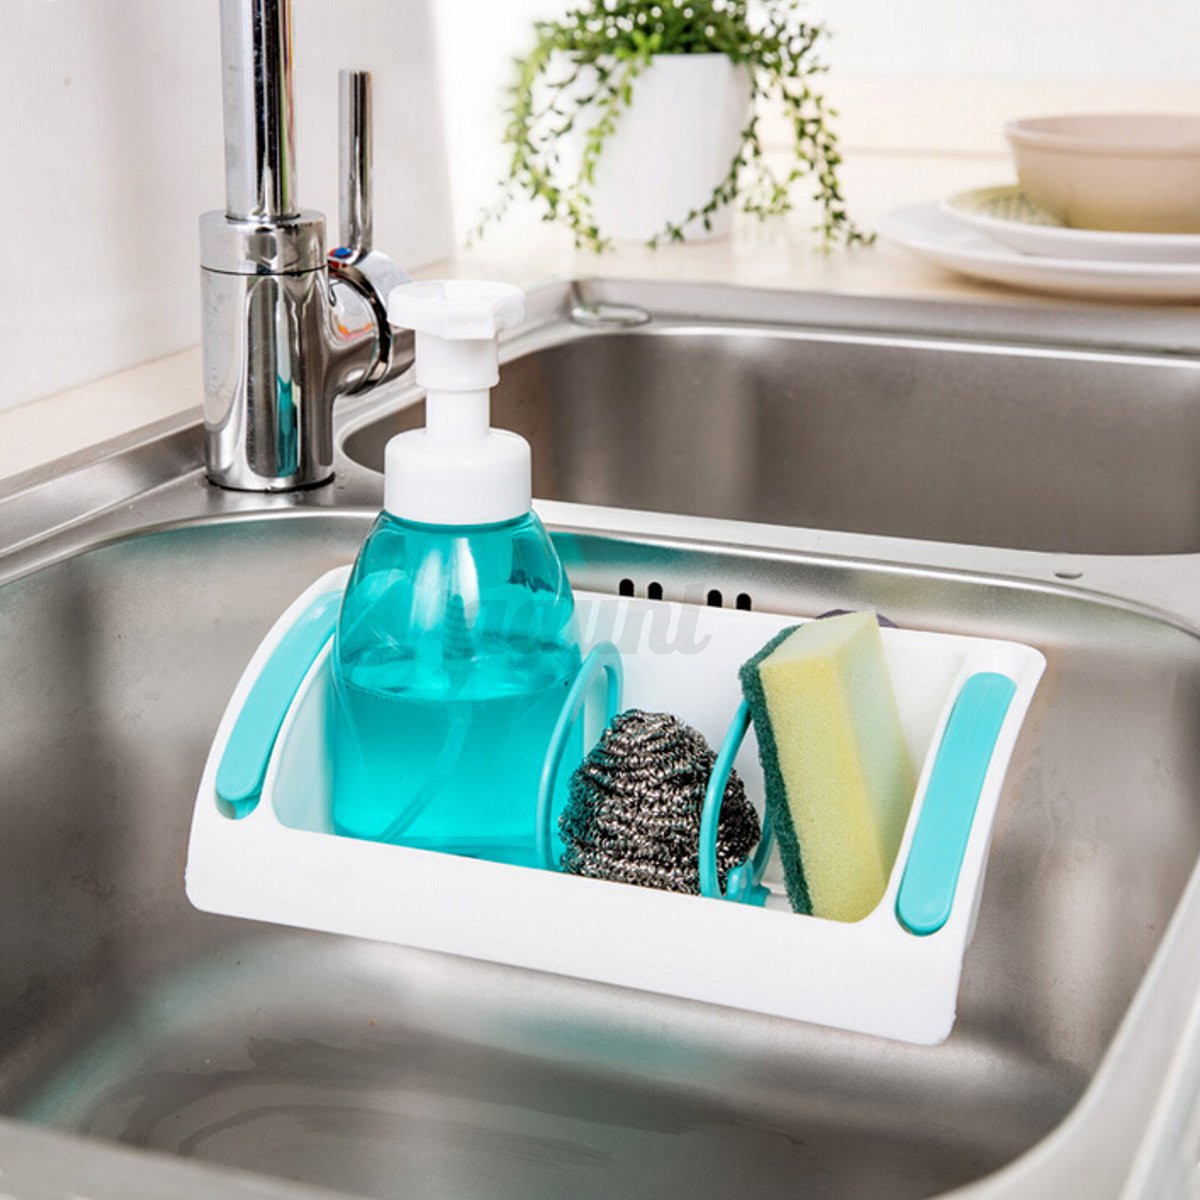 Kitchen Sink Rack Holder Drainer Suction Bathroom Shelf